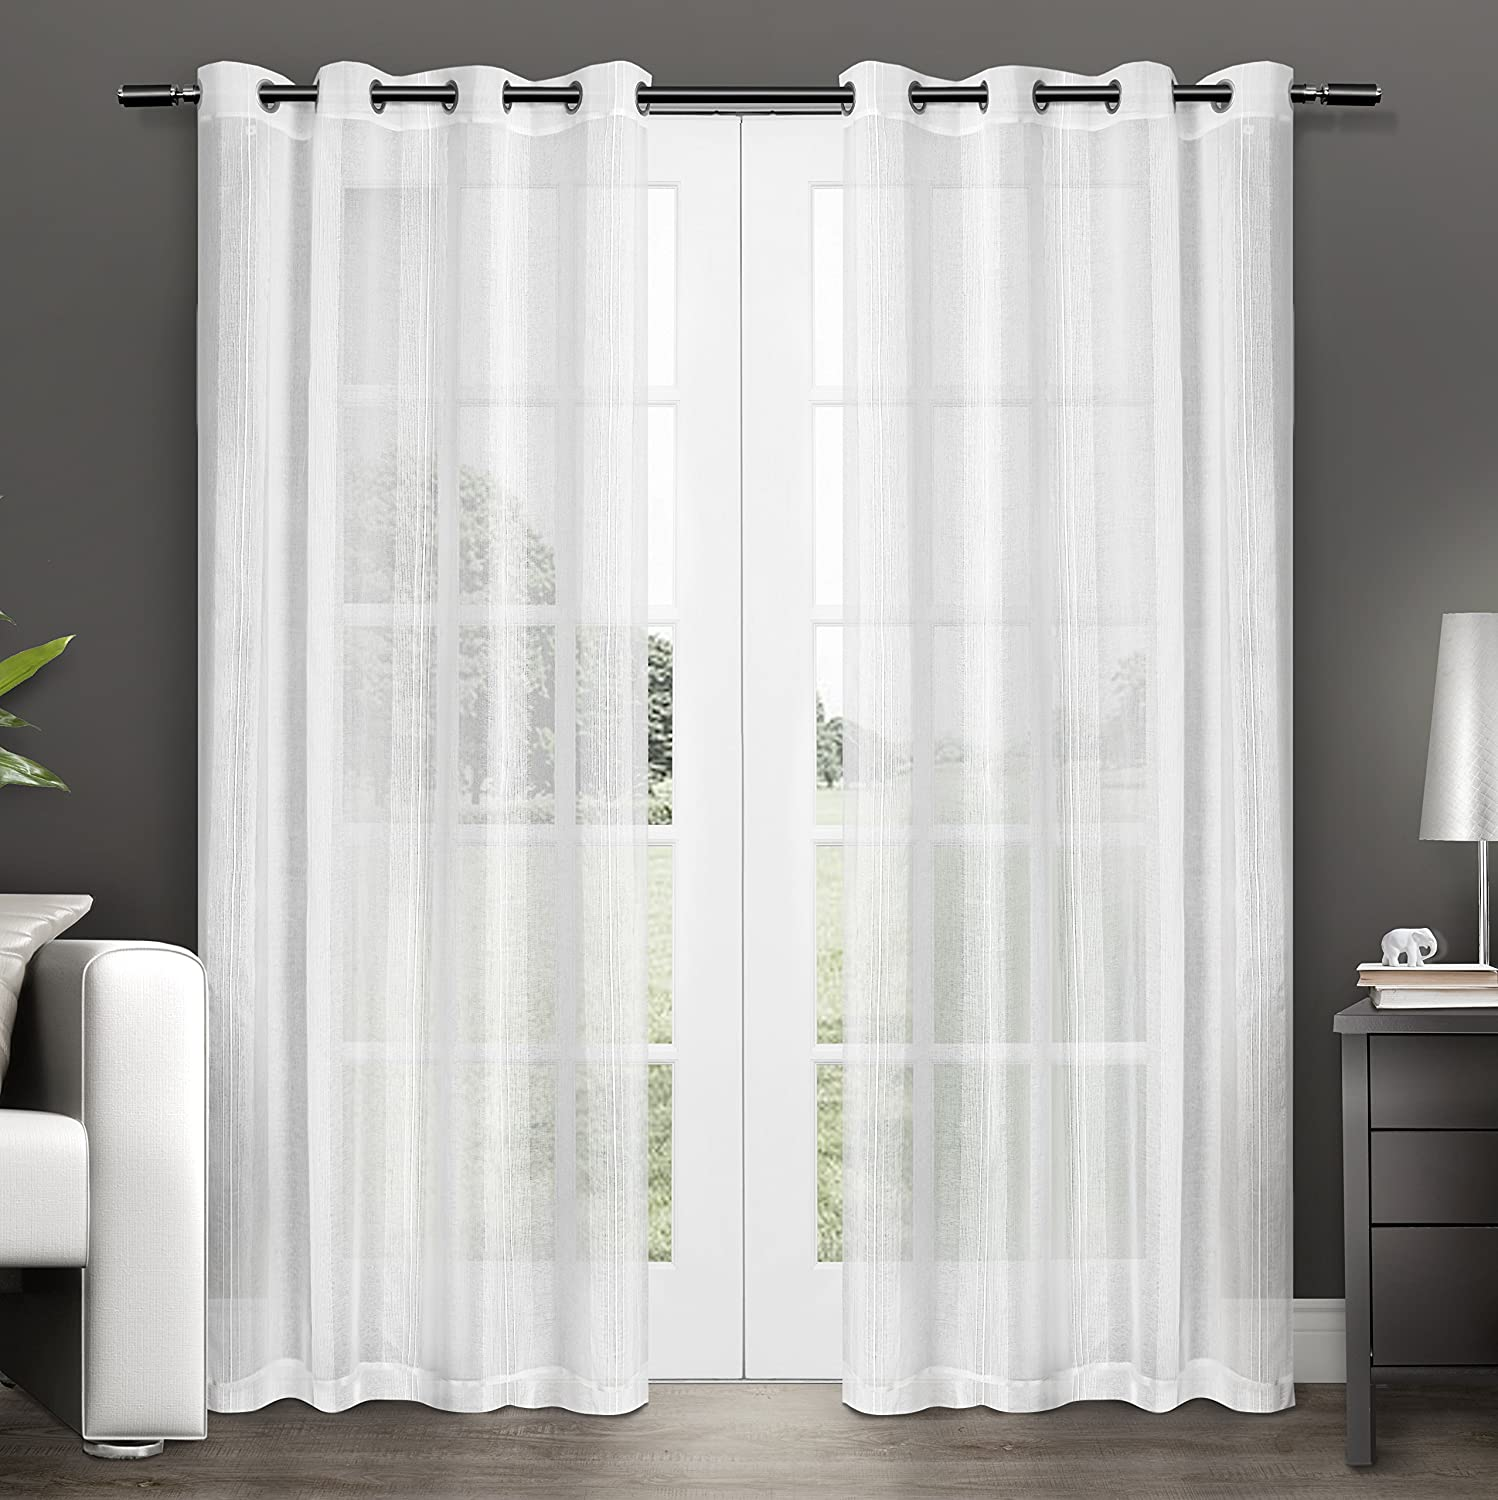 sheer curtain panels ease bedding with style. Black Bedroom Furniture Sets. Home Design Ideas